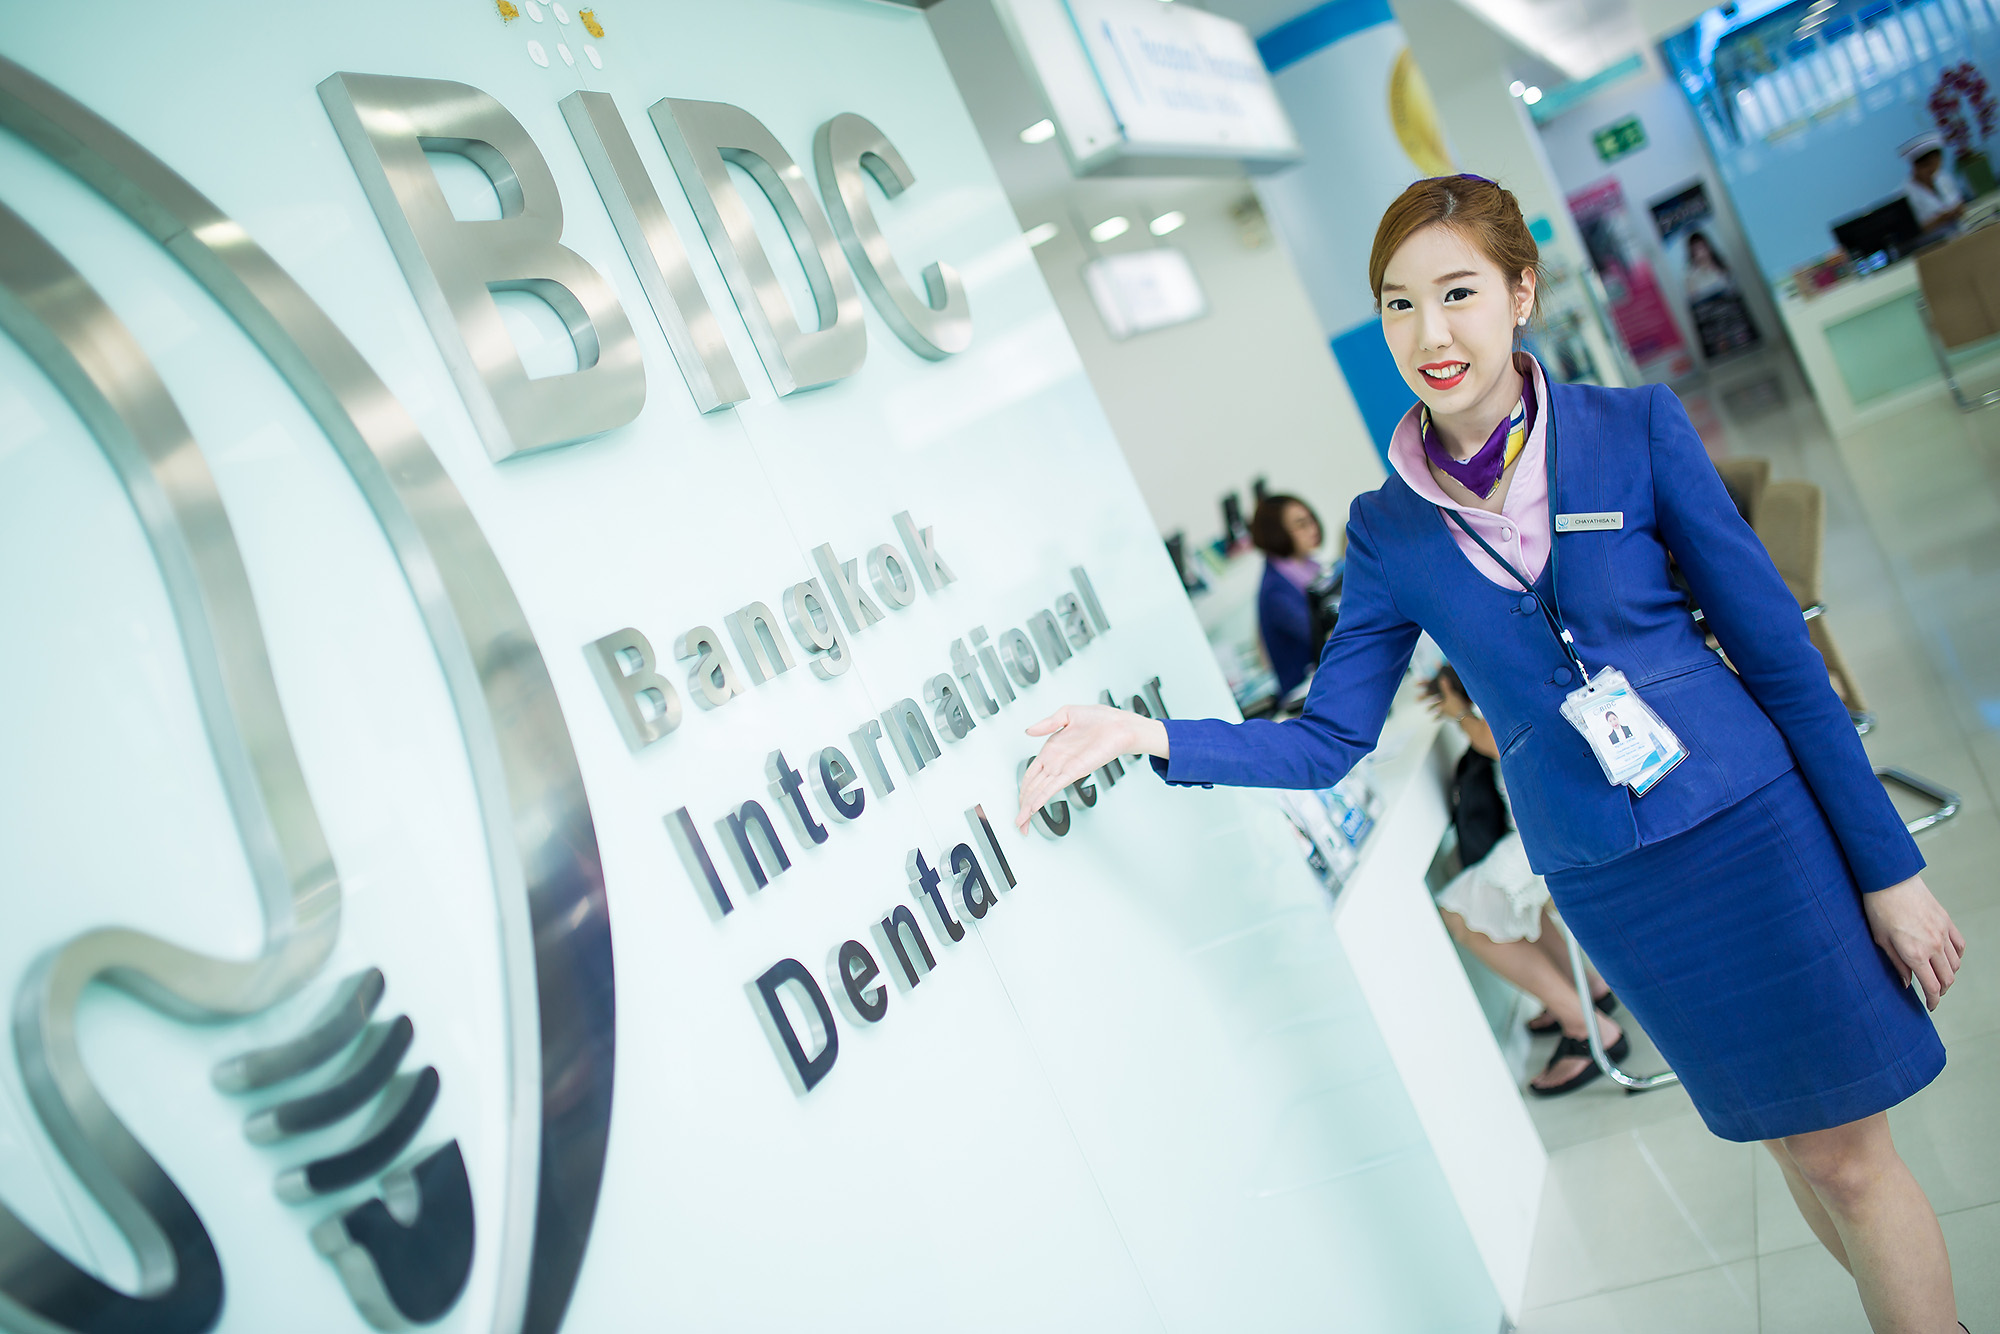 Bangkok International Dental Center (BIDC) - Main Headquarters